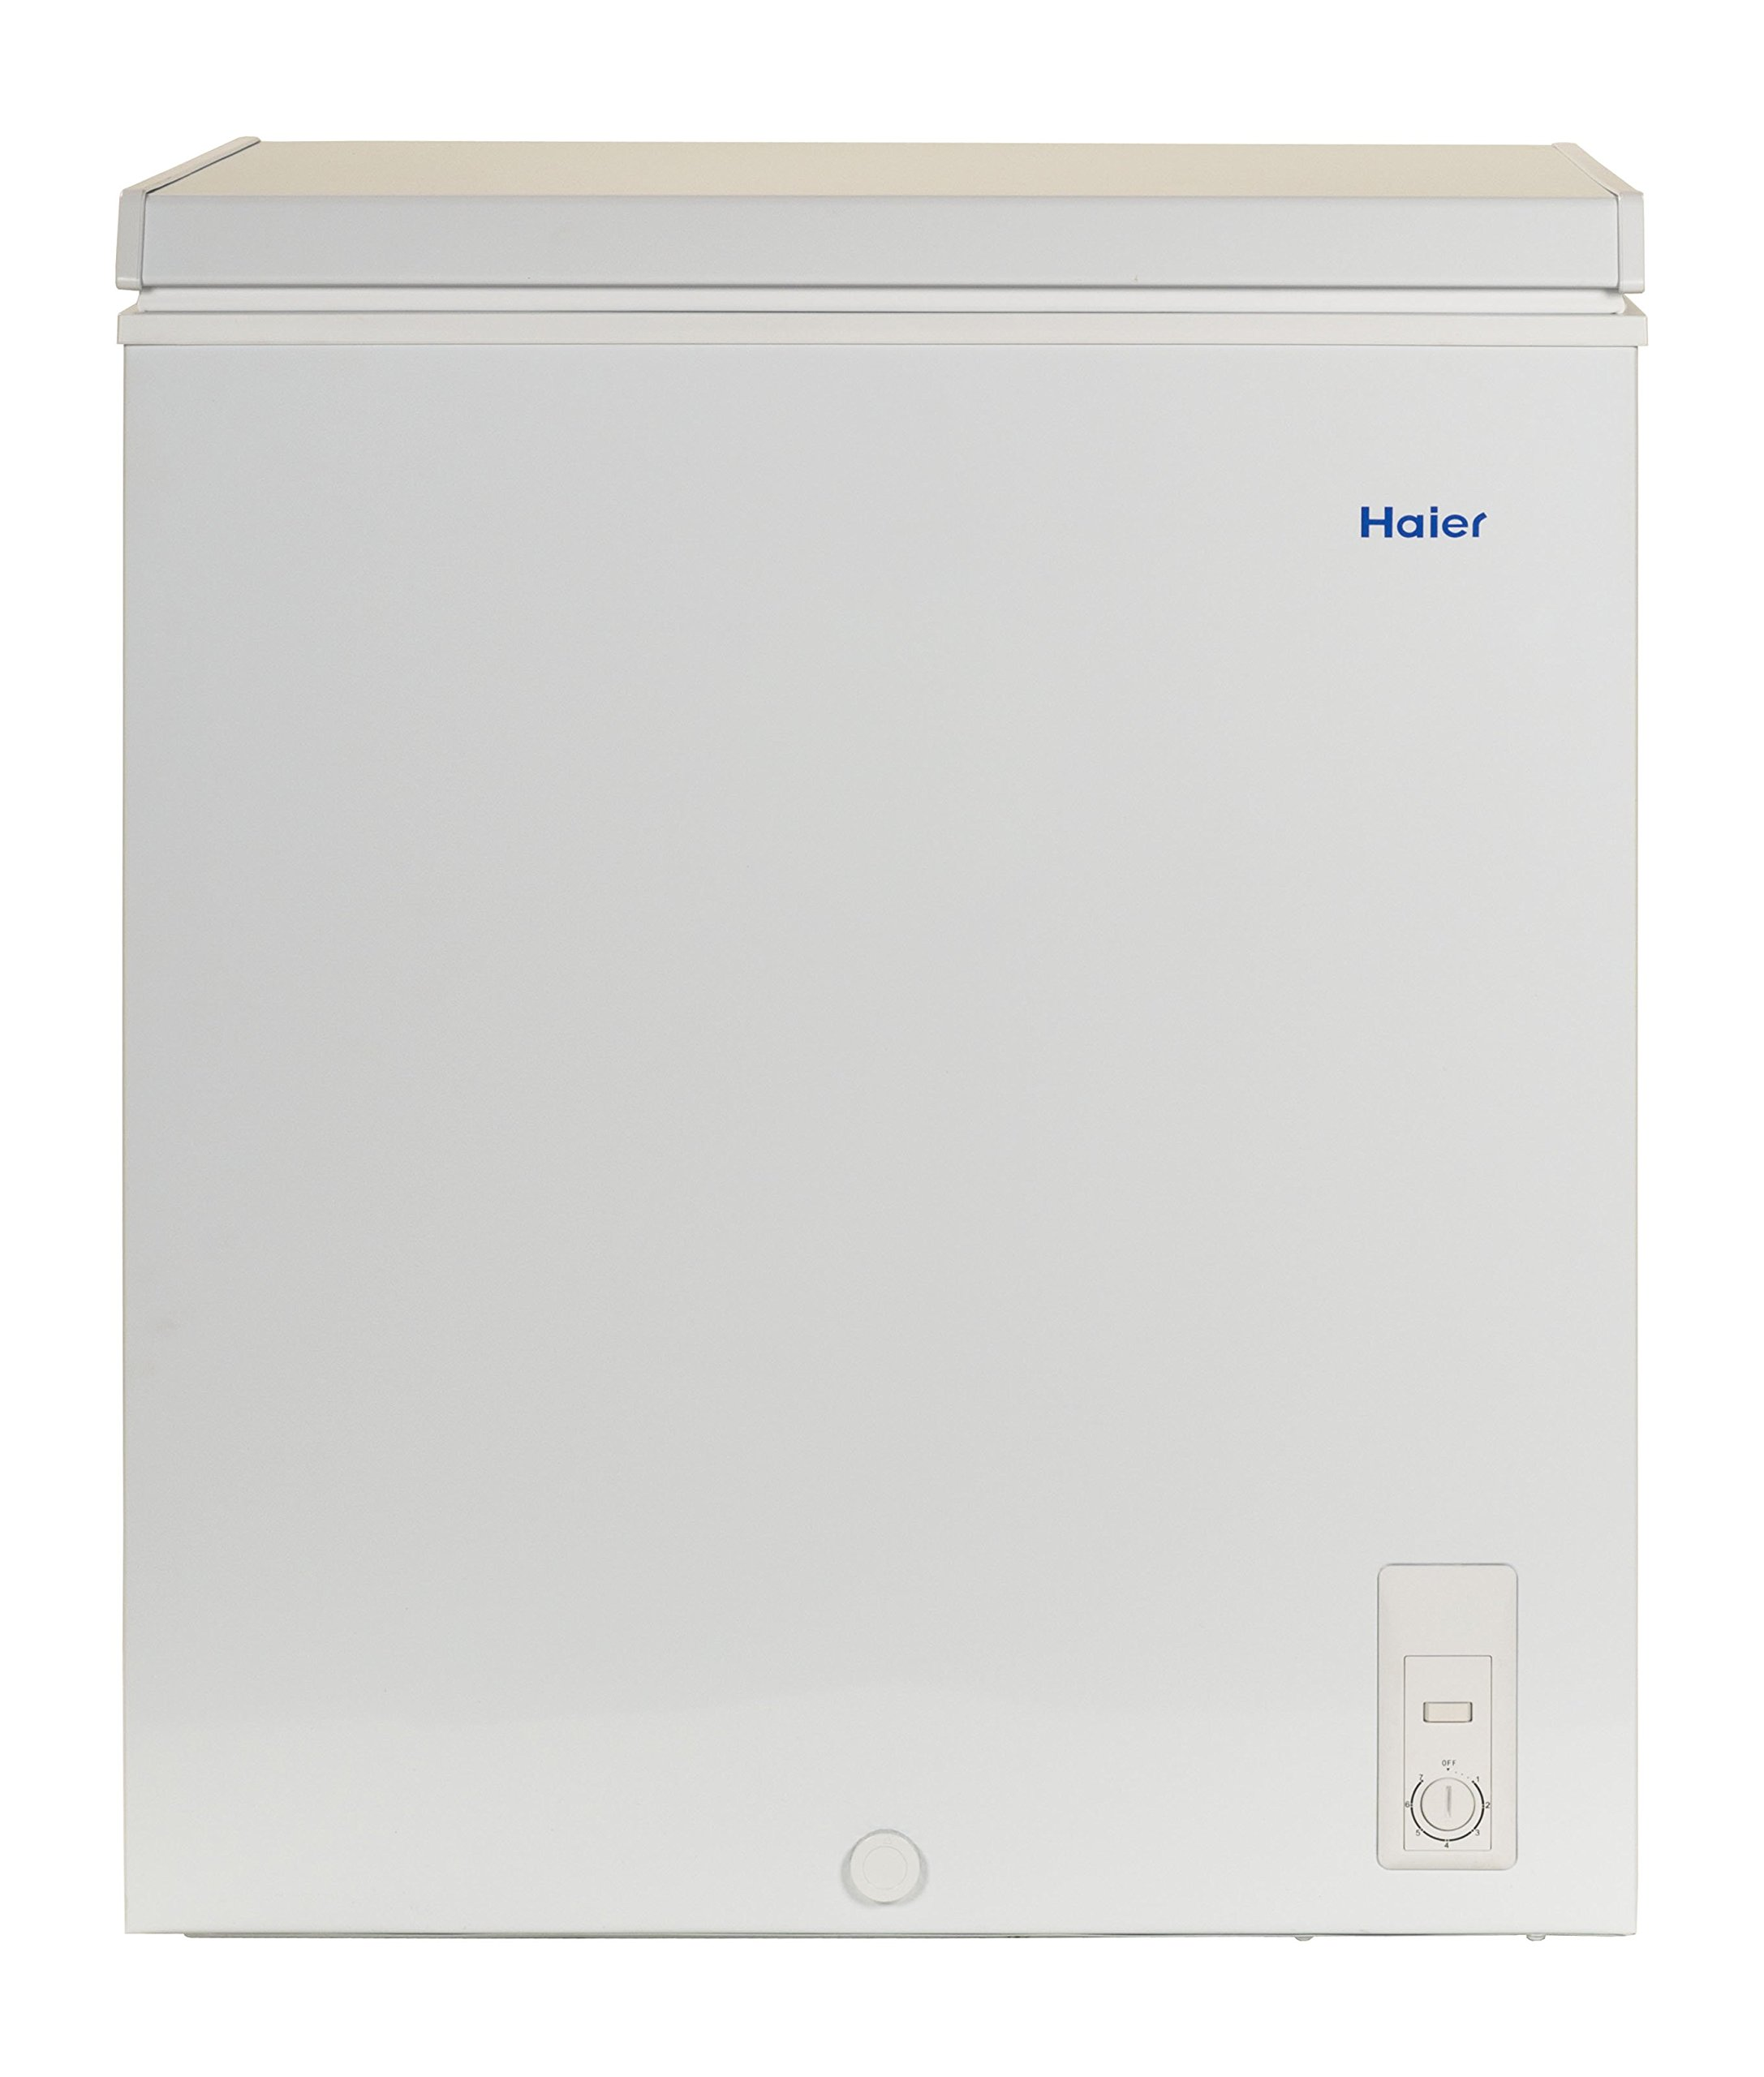 Haier HF50CM23NW 5.0 cu. ft. Capacity Chest Freezer, White by Haier